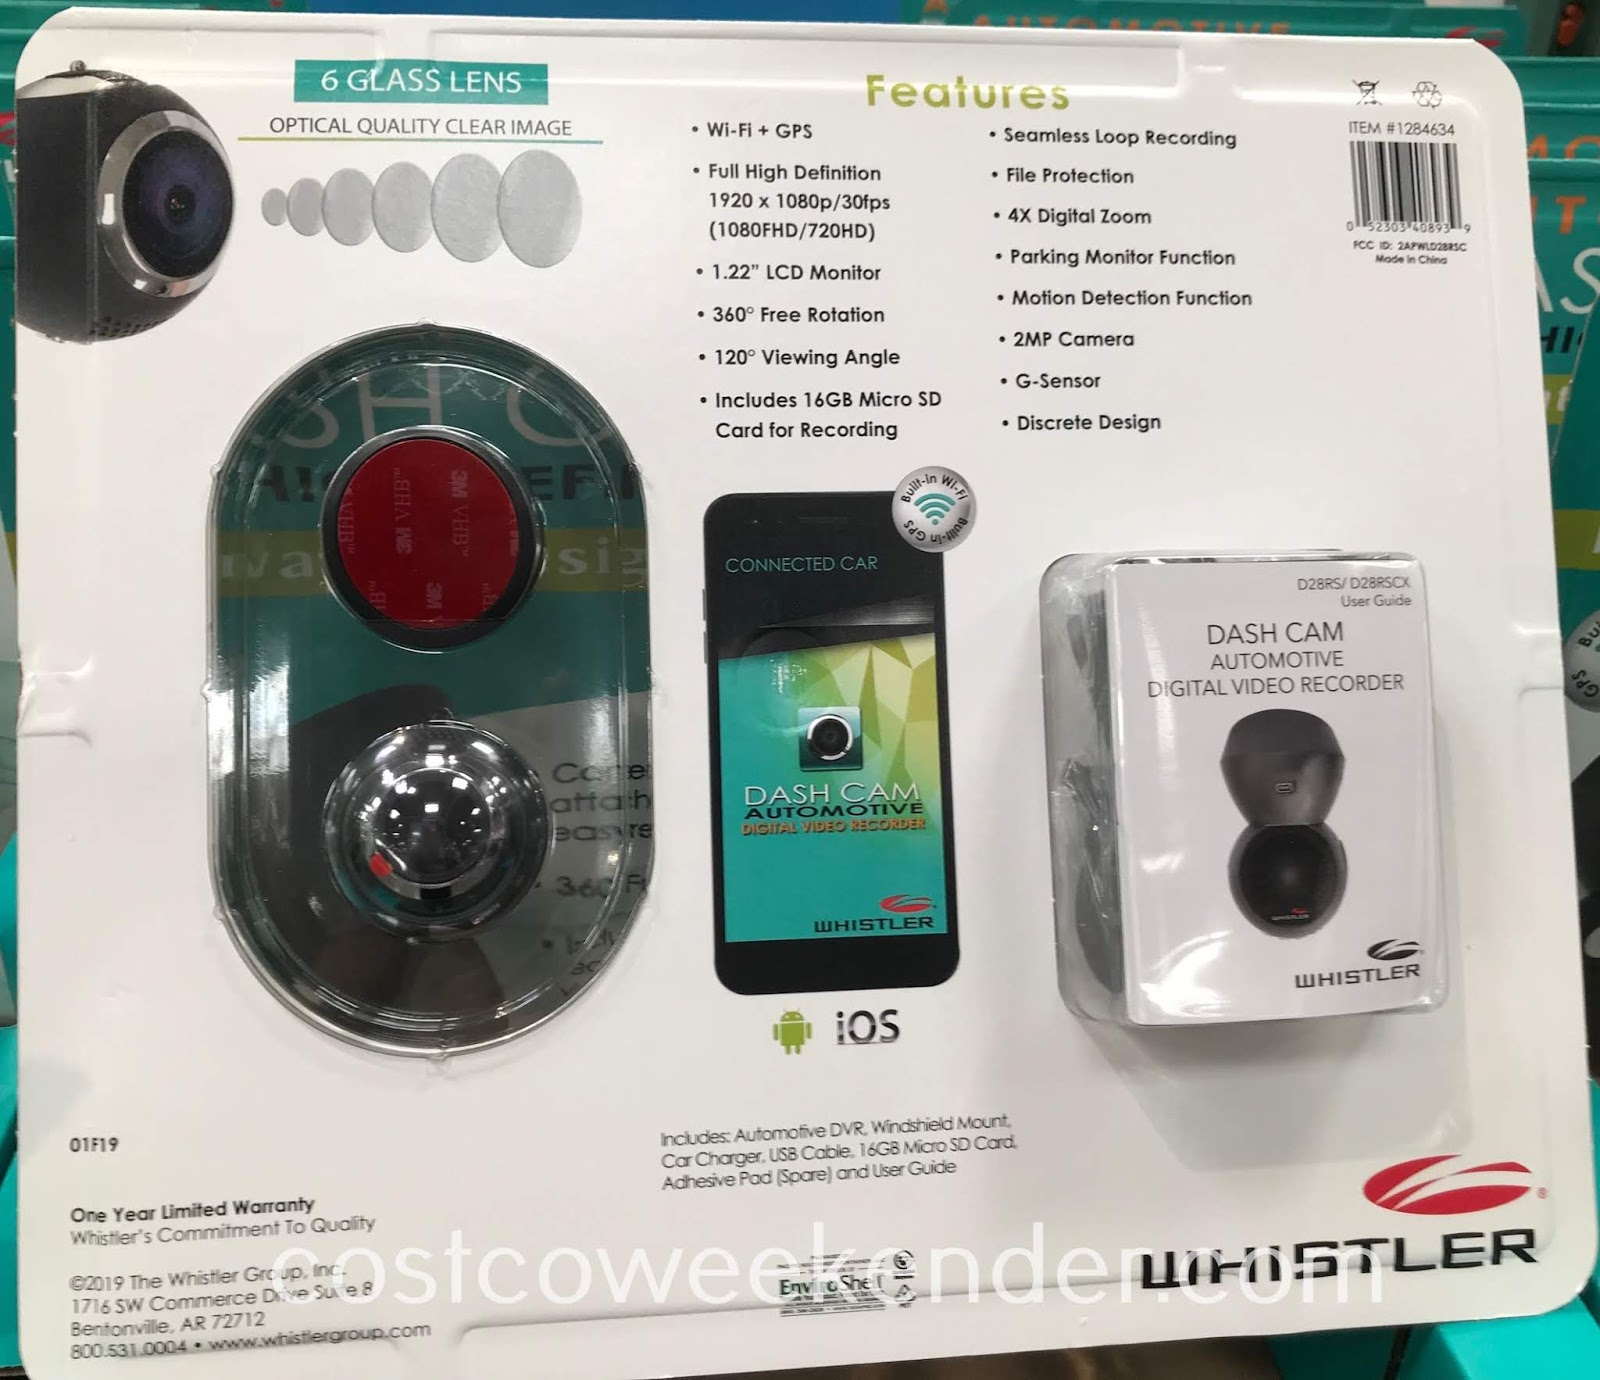 Costco 1284634 - Whistler Dash Cam: great for any of your vehicles